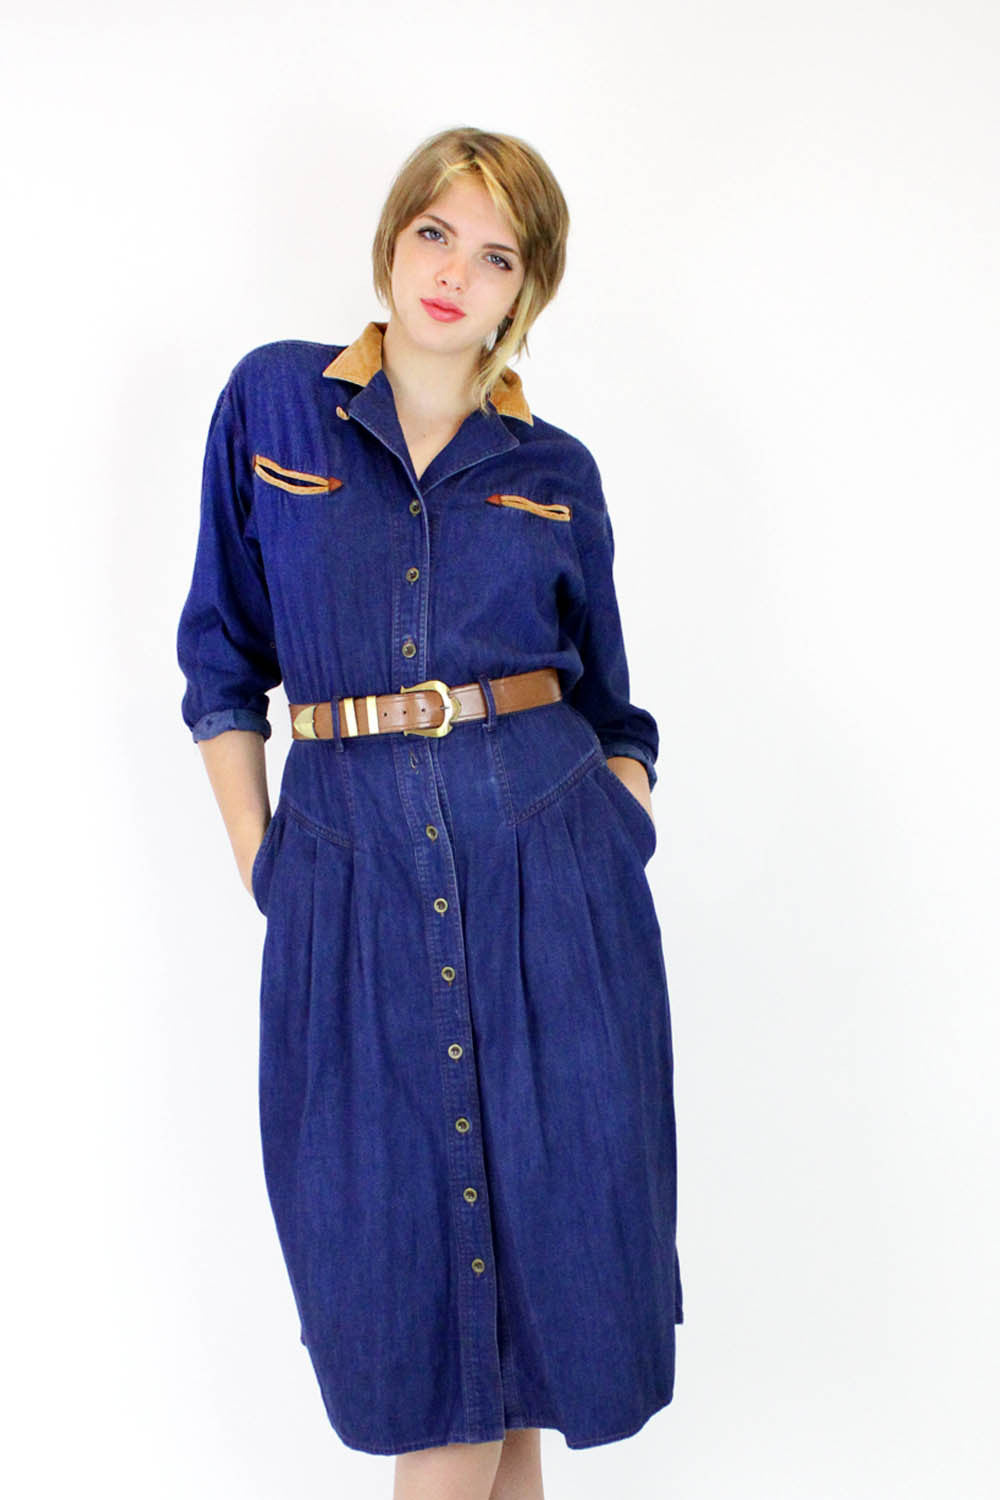 Dark Denim Button Dress S/M